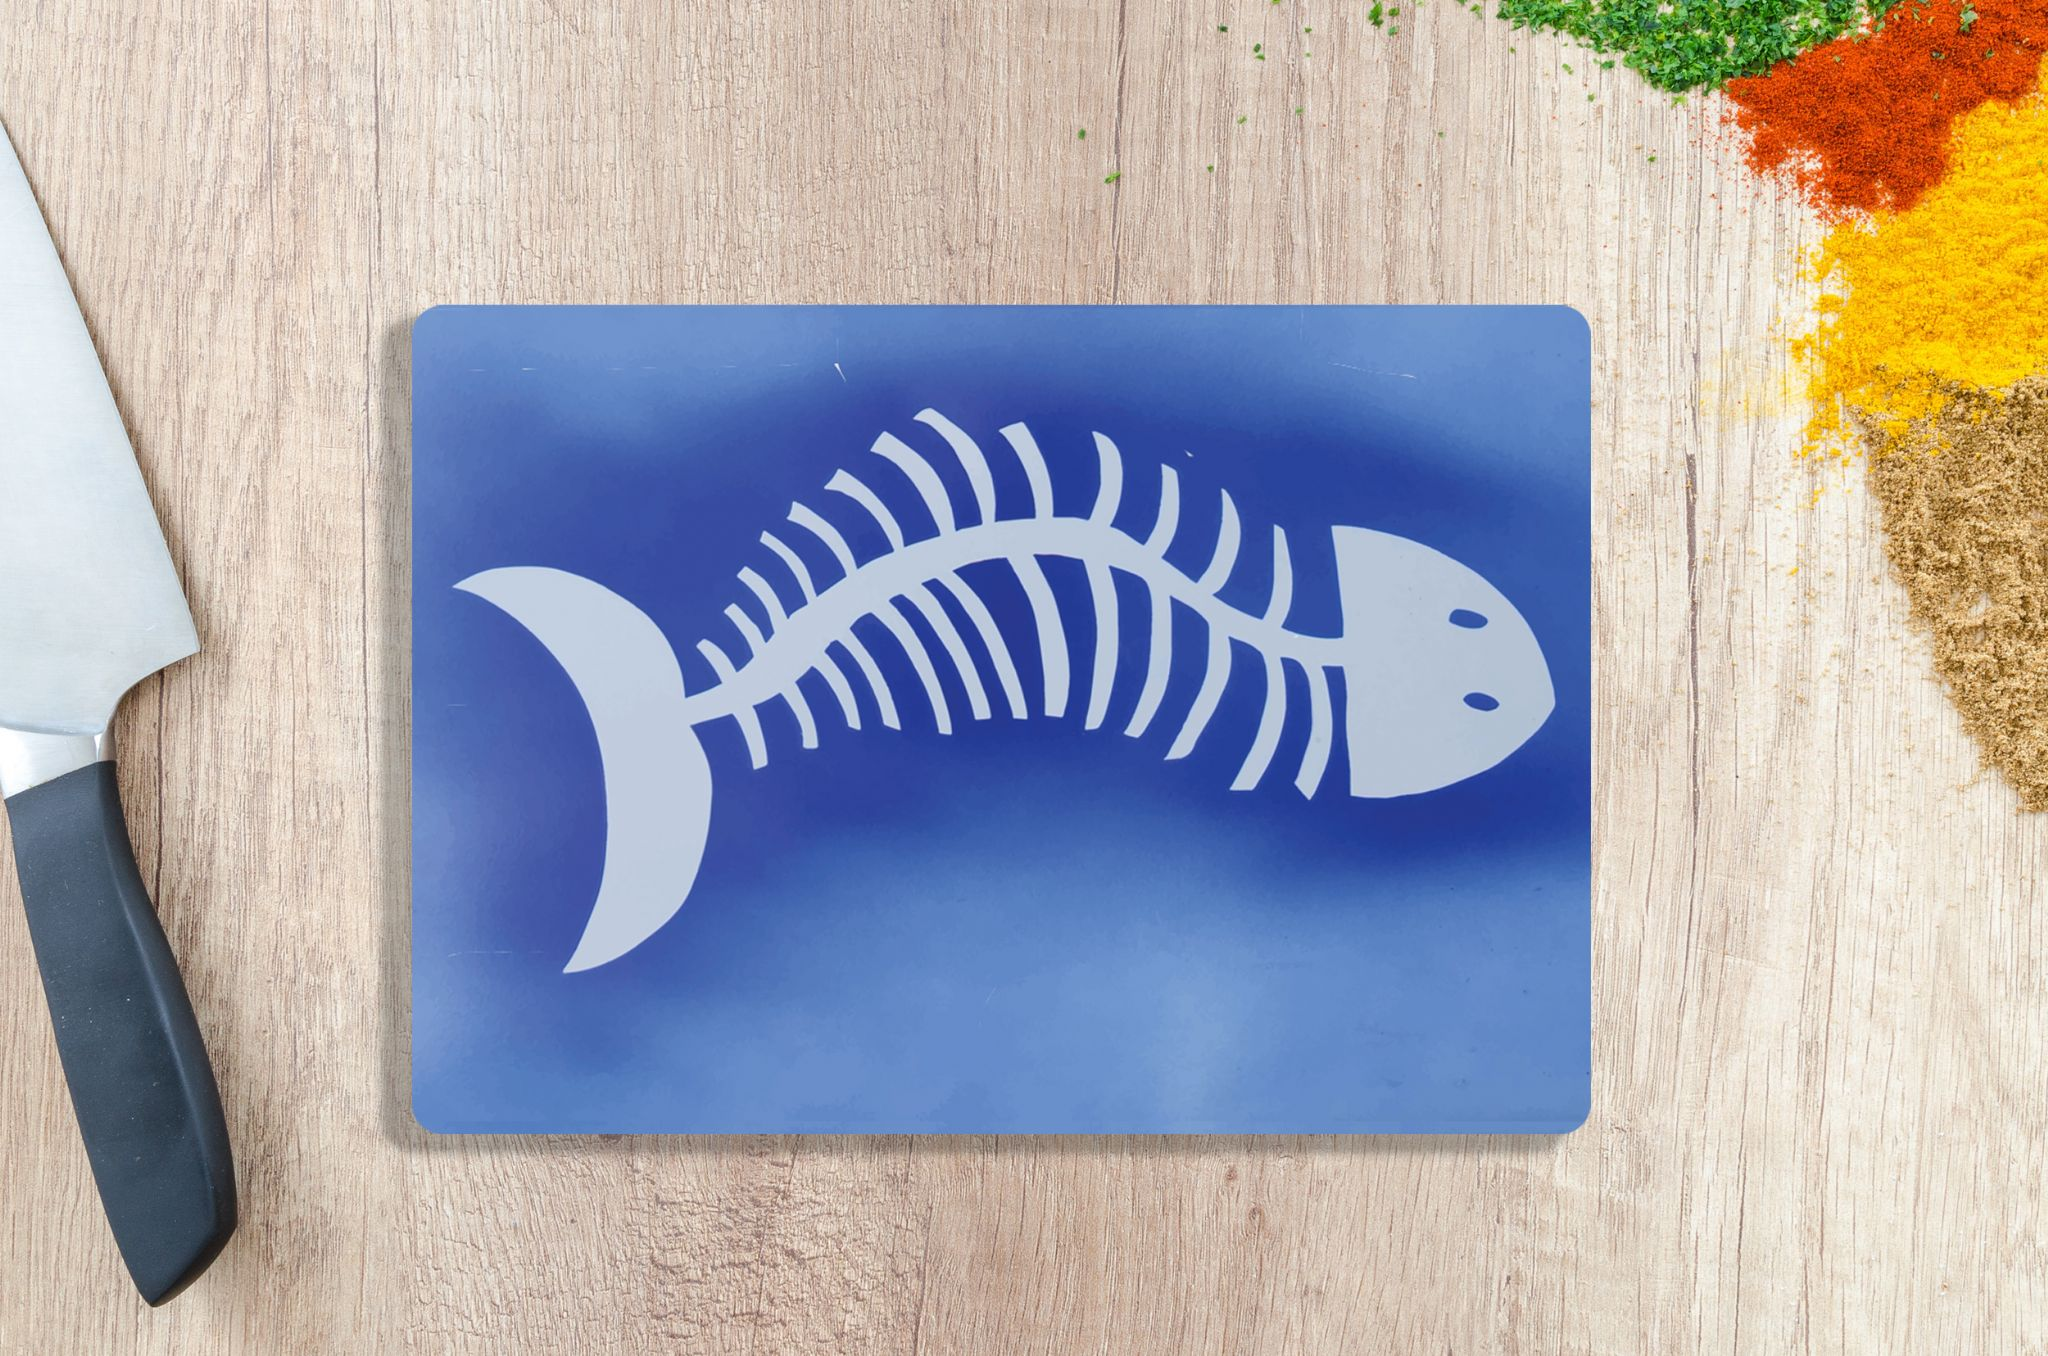 Tempered Glass Chopping Board with Fish Design